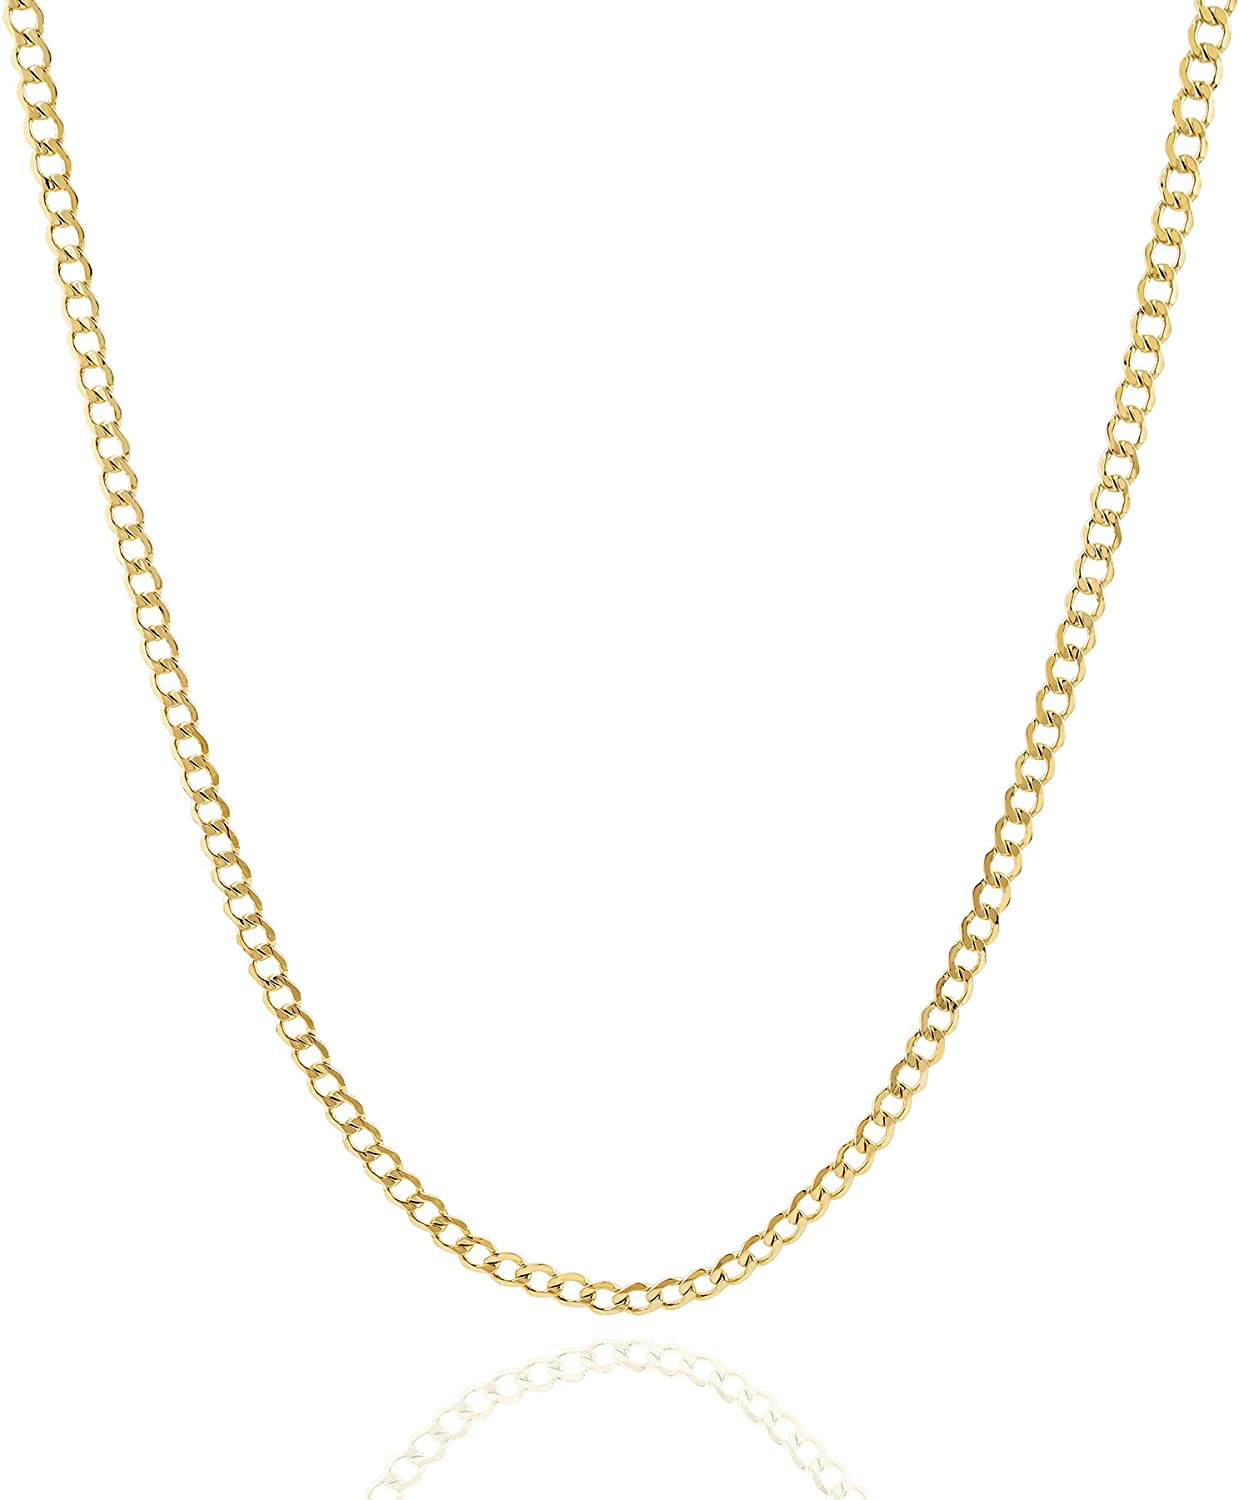 Jewelry Atelier Gold Chain Necklace Collection - 14K Solid Yellow Gold Filled Miami Cuban Curb Link Chain Necklaces for Women and Men with Different Sizes (2.7mm, 3.6mm, 4.5mm, or 5.5mm)